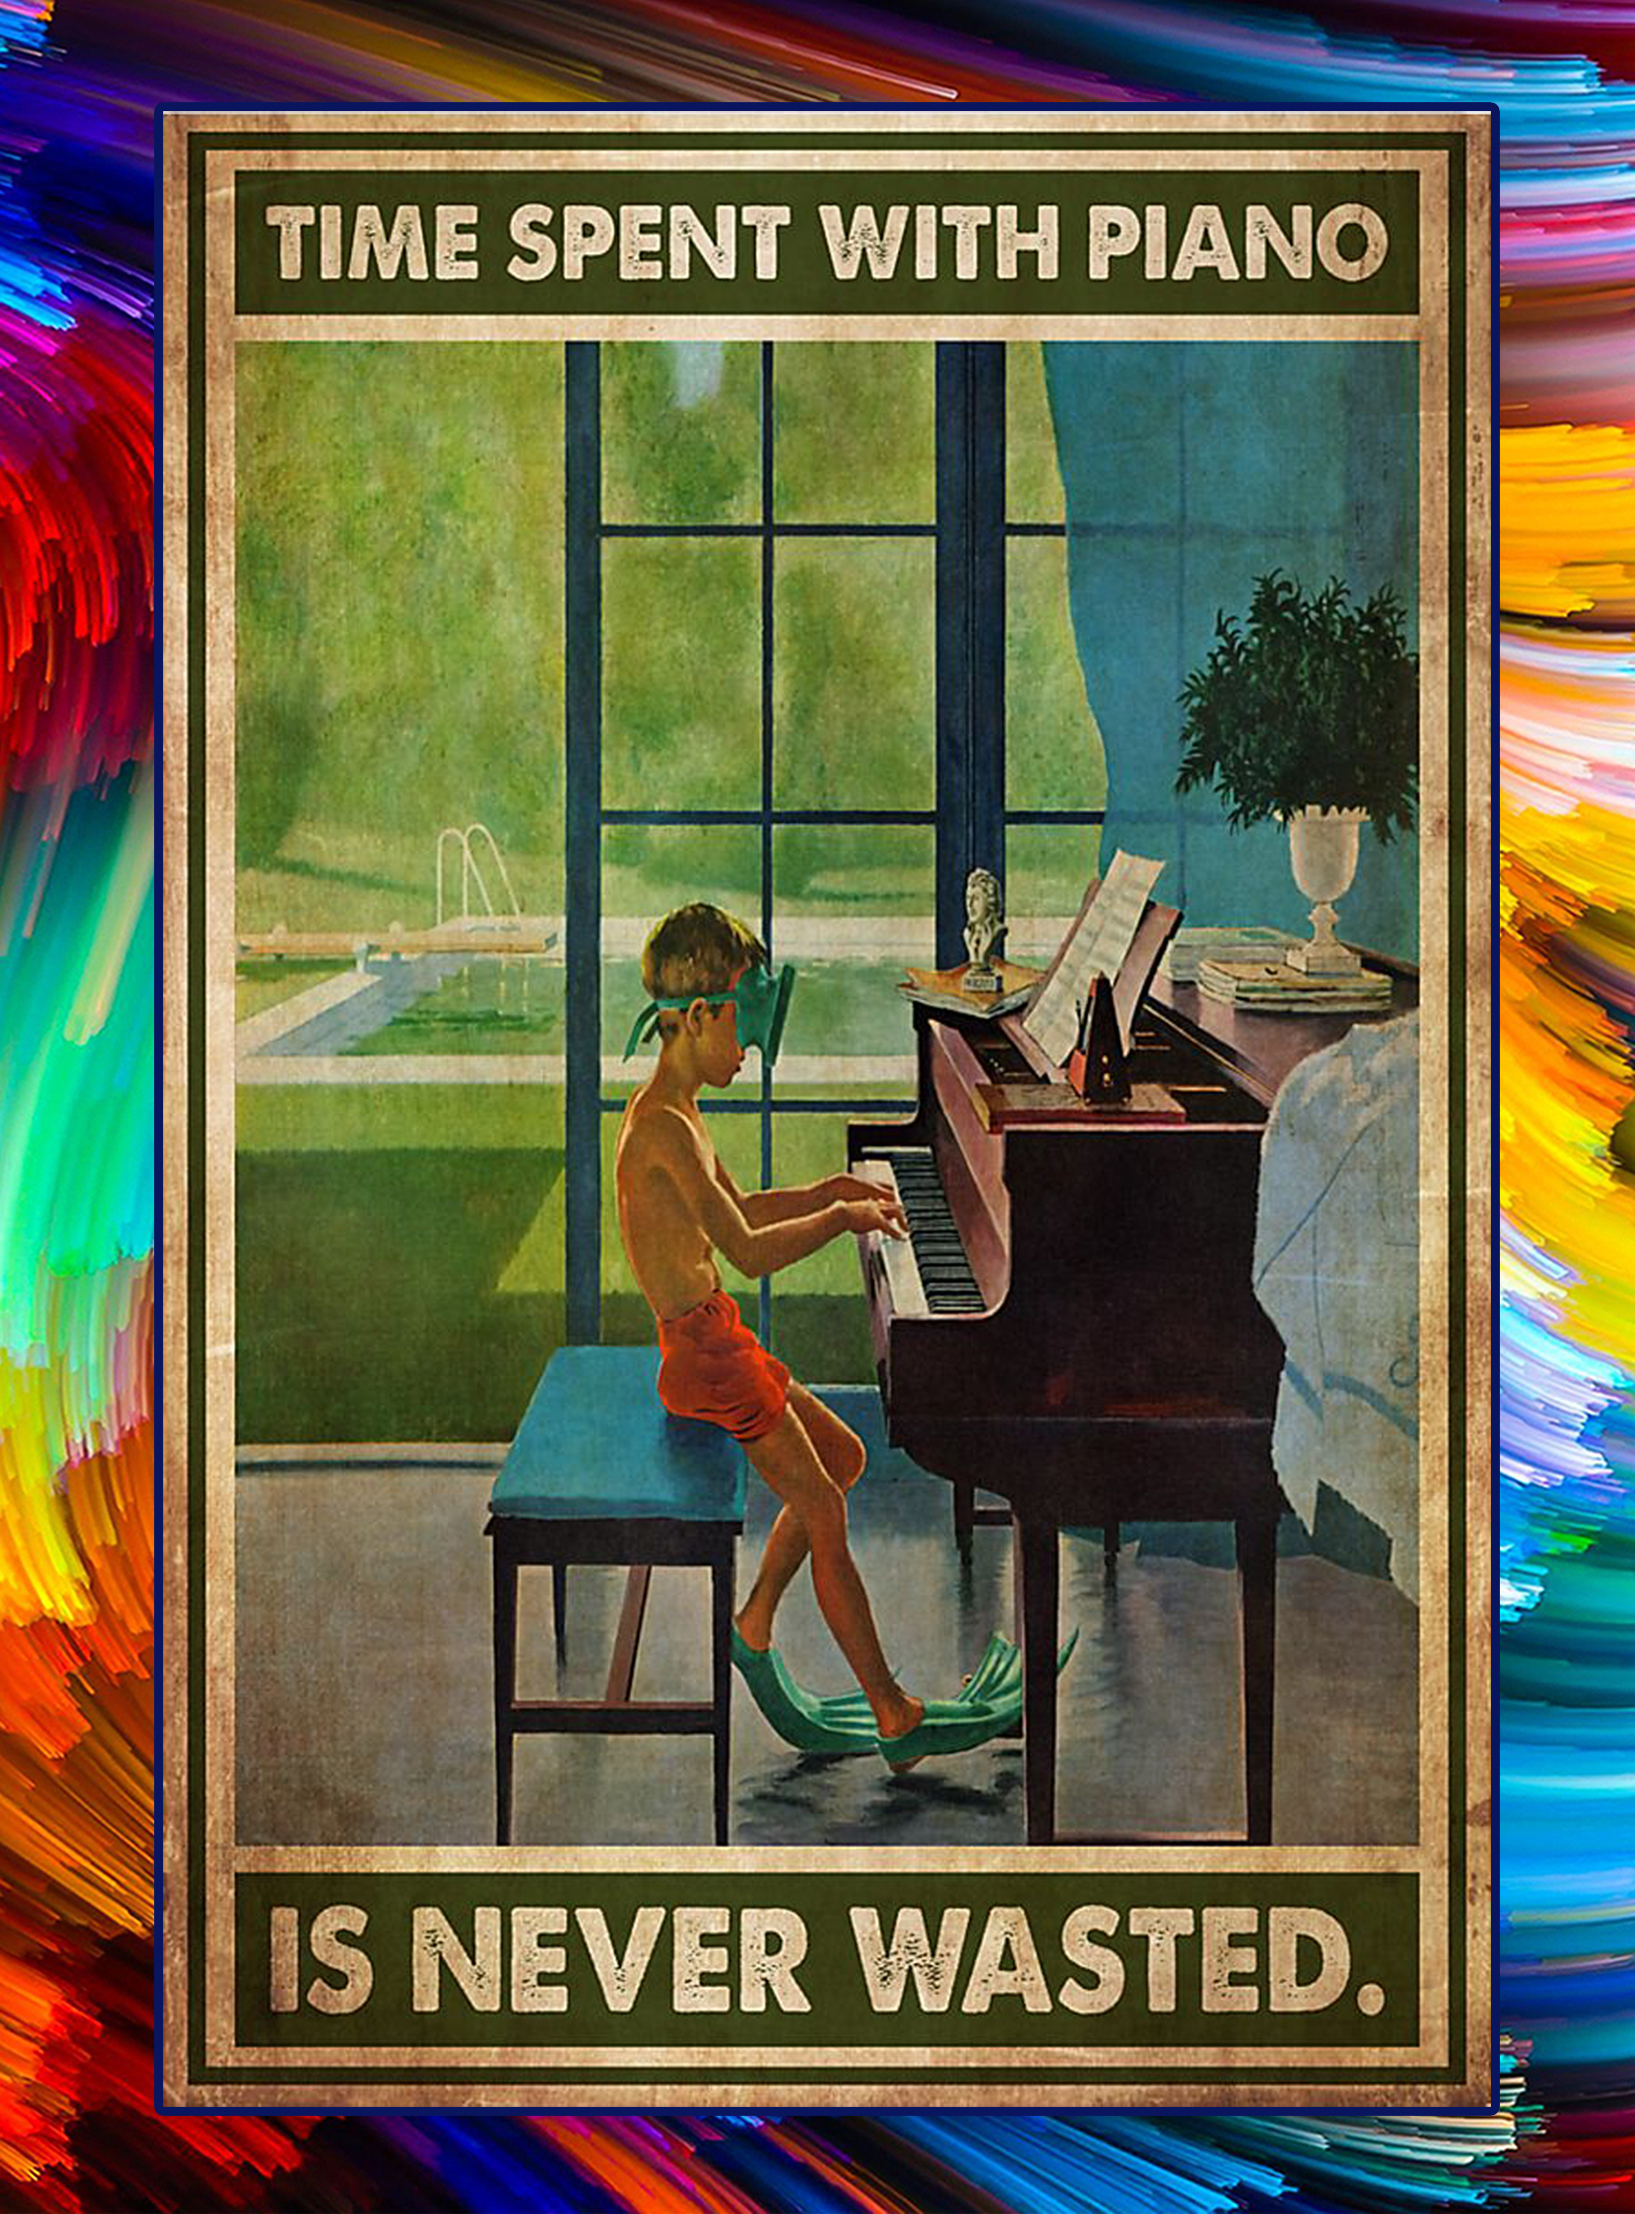 Time spent with piano is never wasted poster - A3